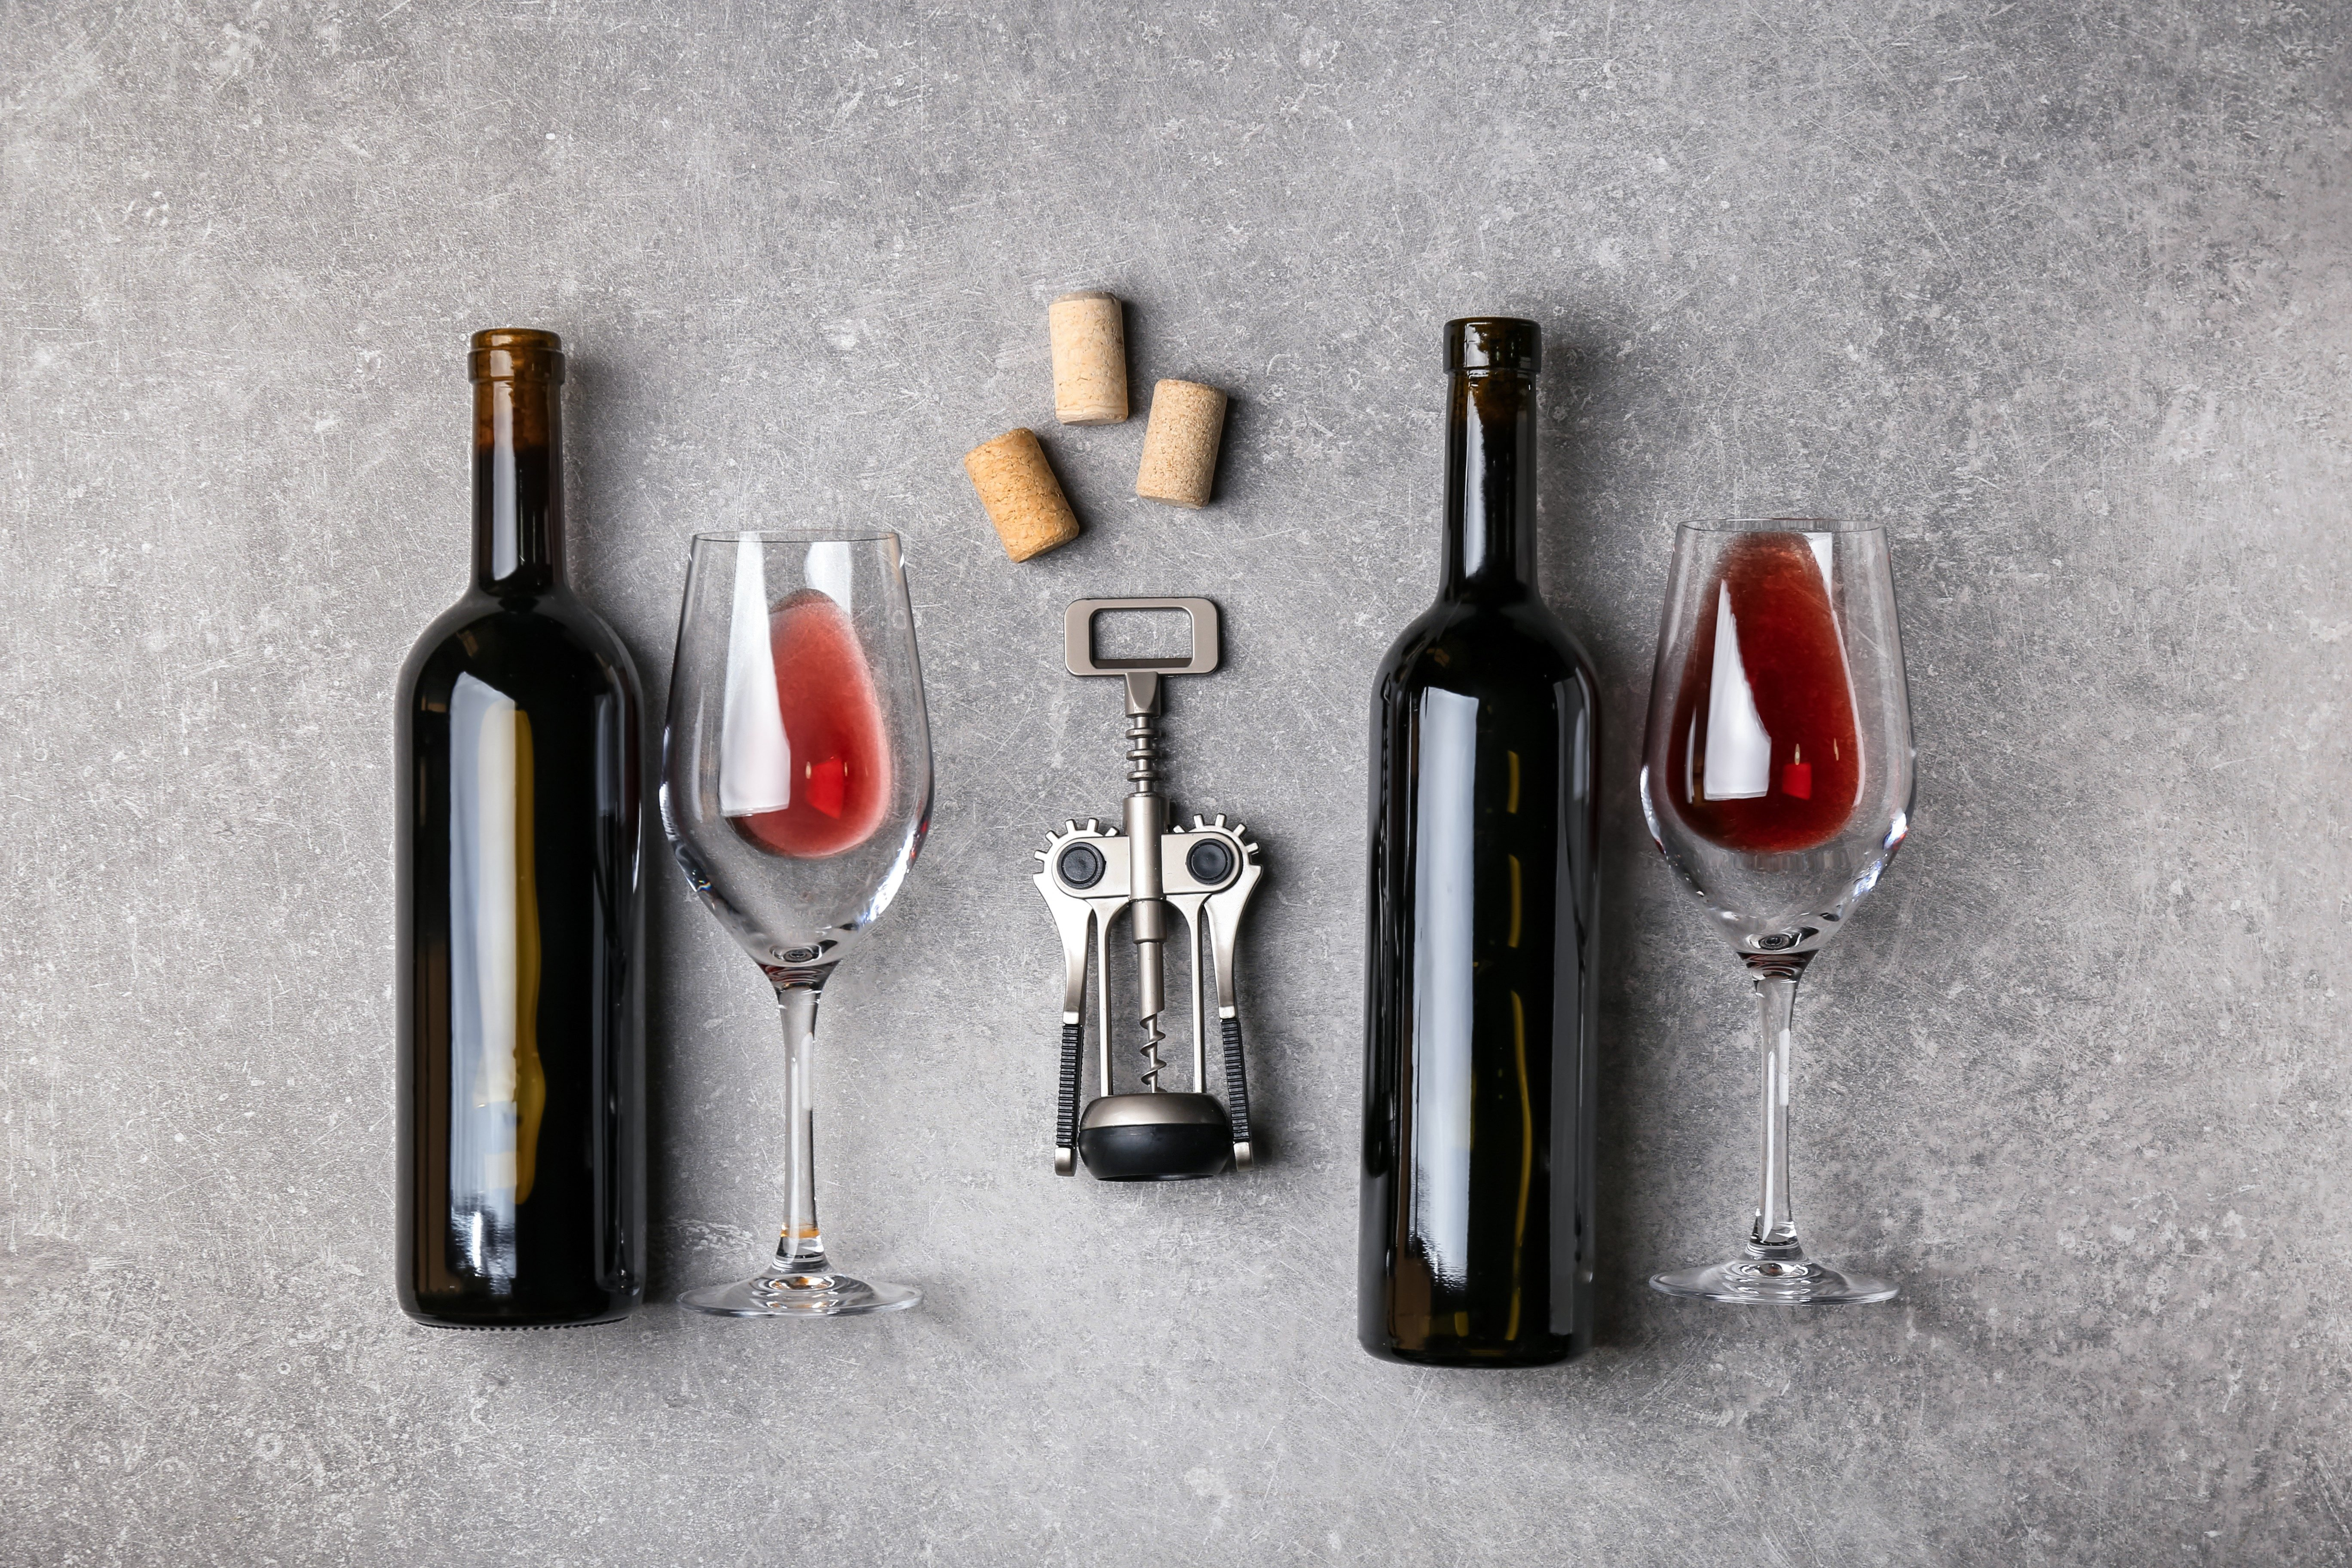 Composition with bottles of red wine and glasses on grey background